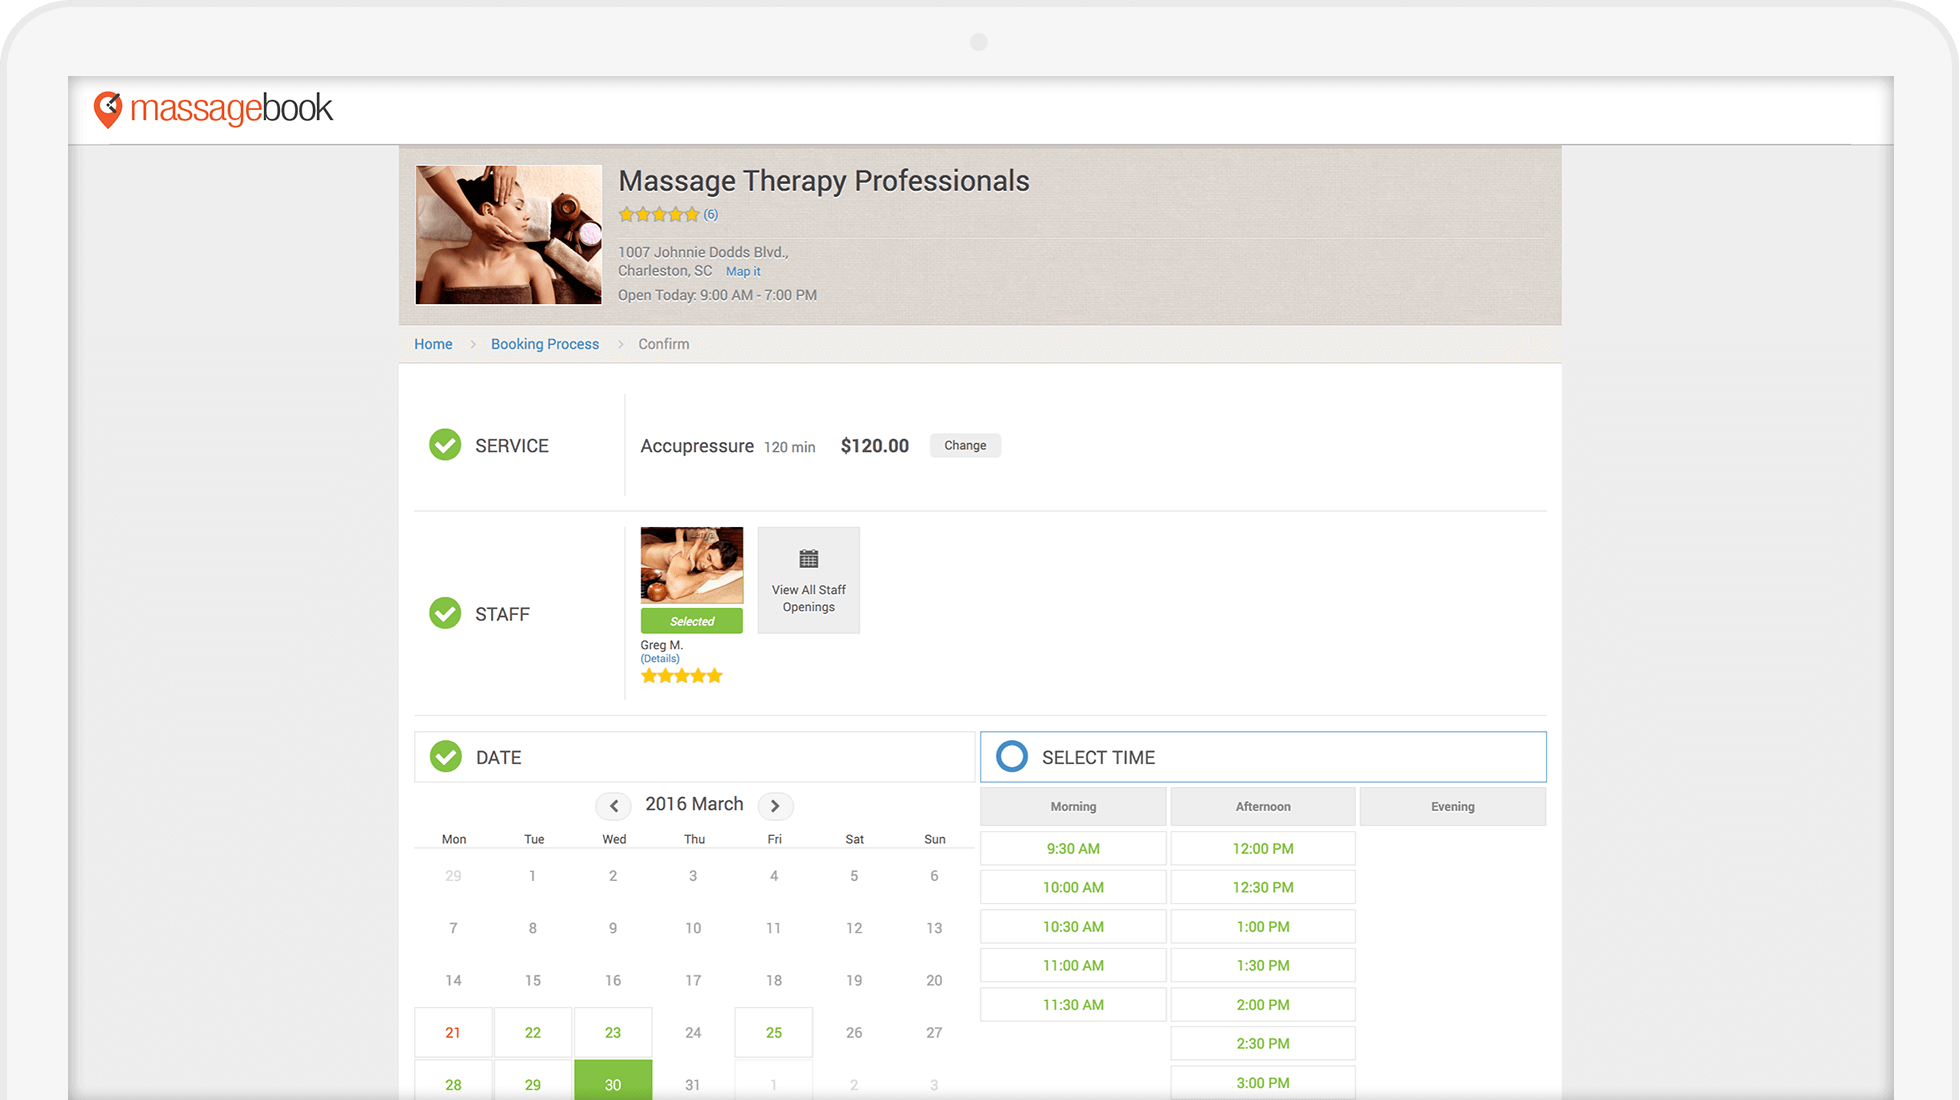 Best Massage Business Tools: MassageBook has a great online booking experience.